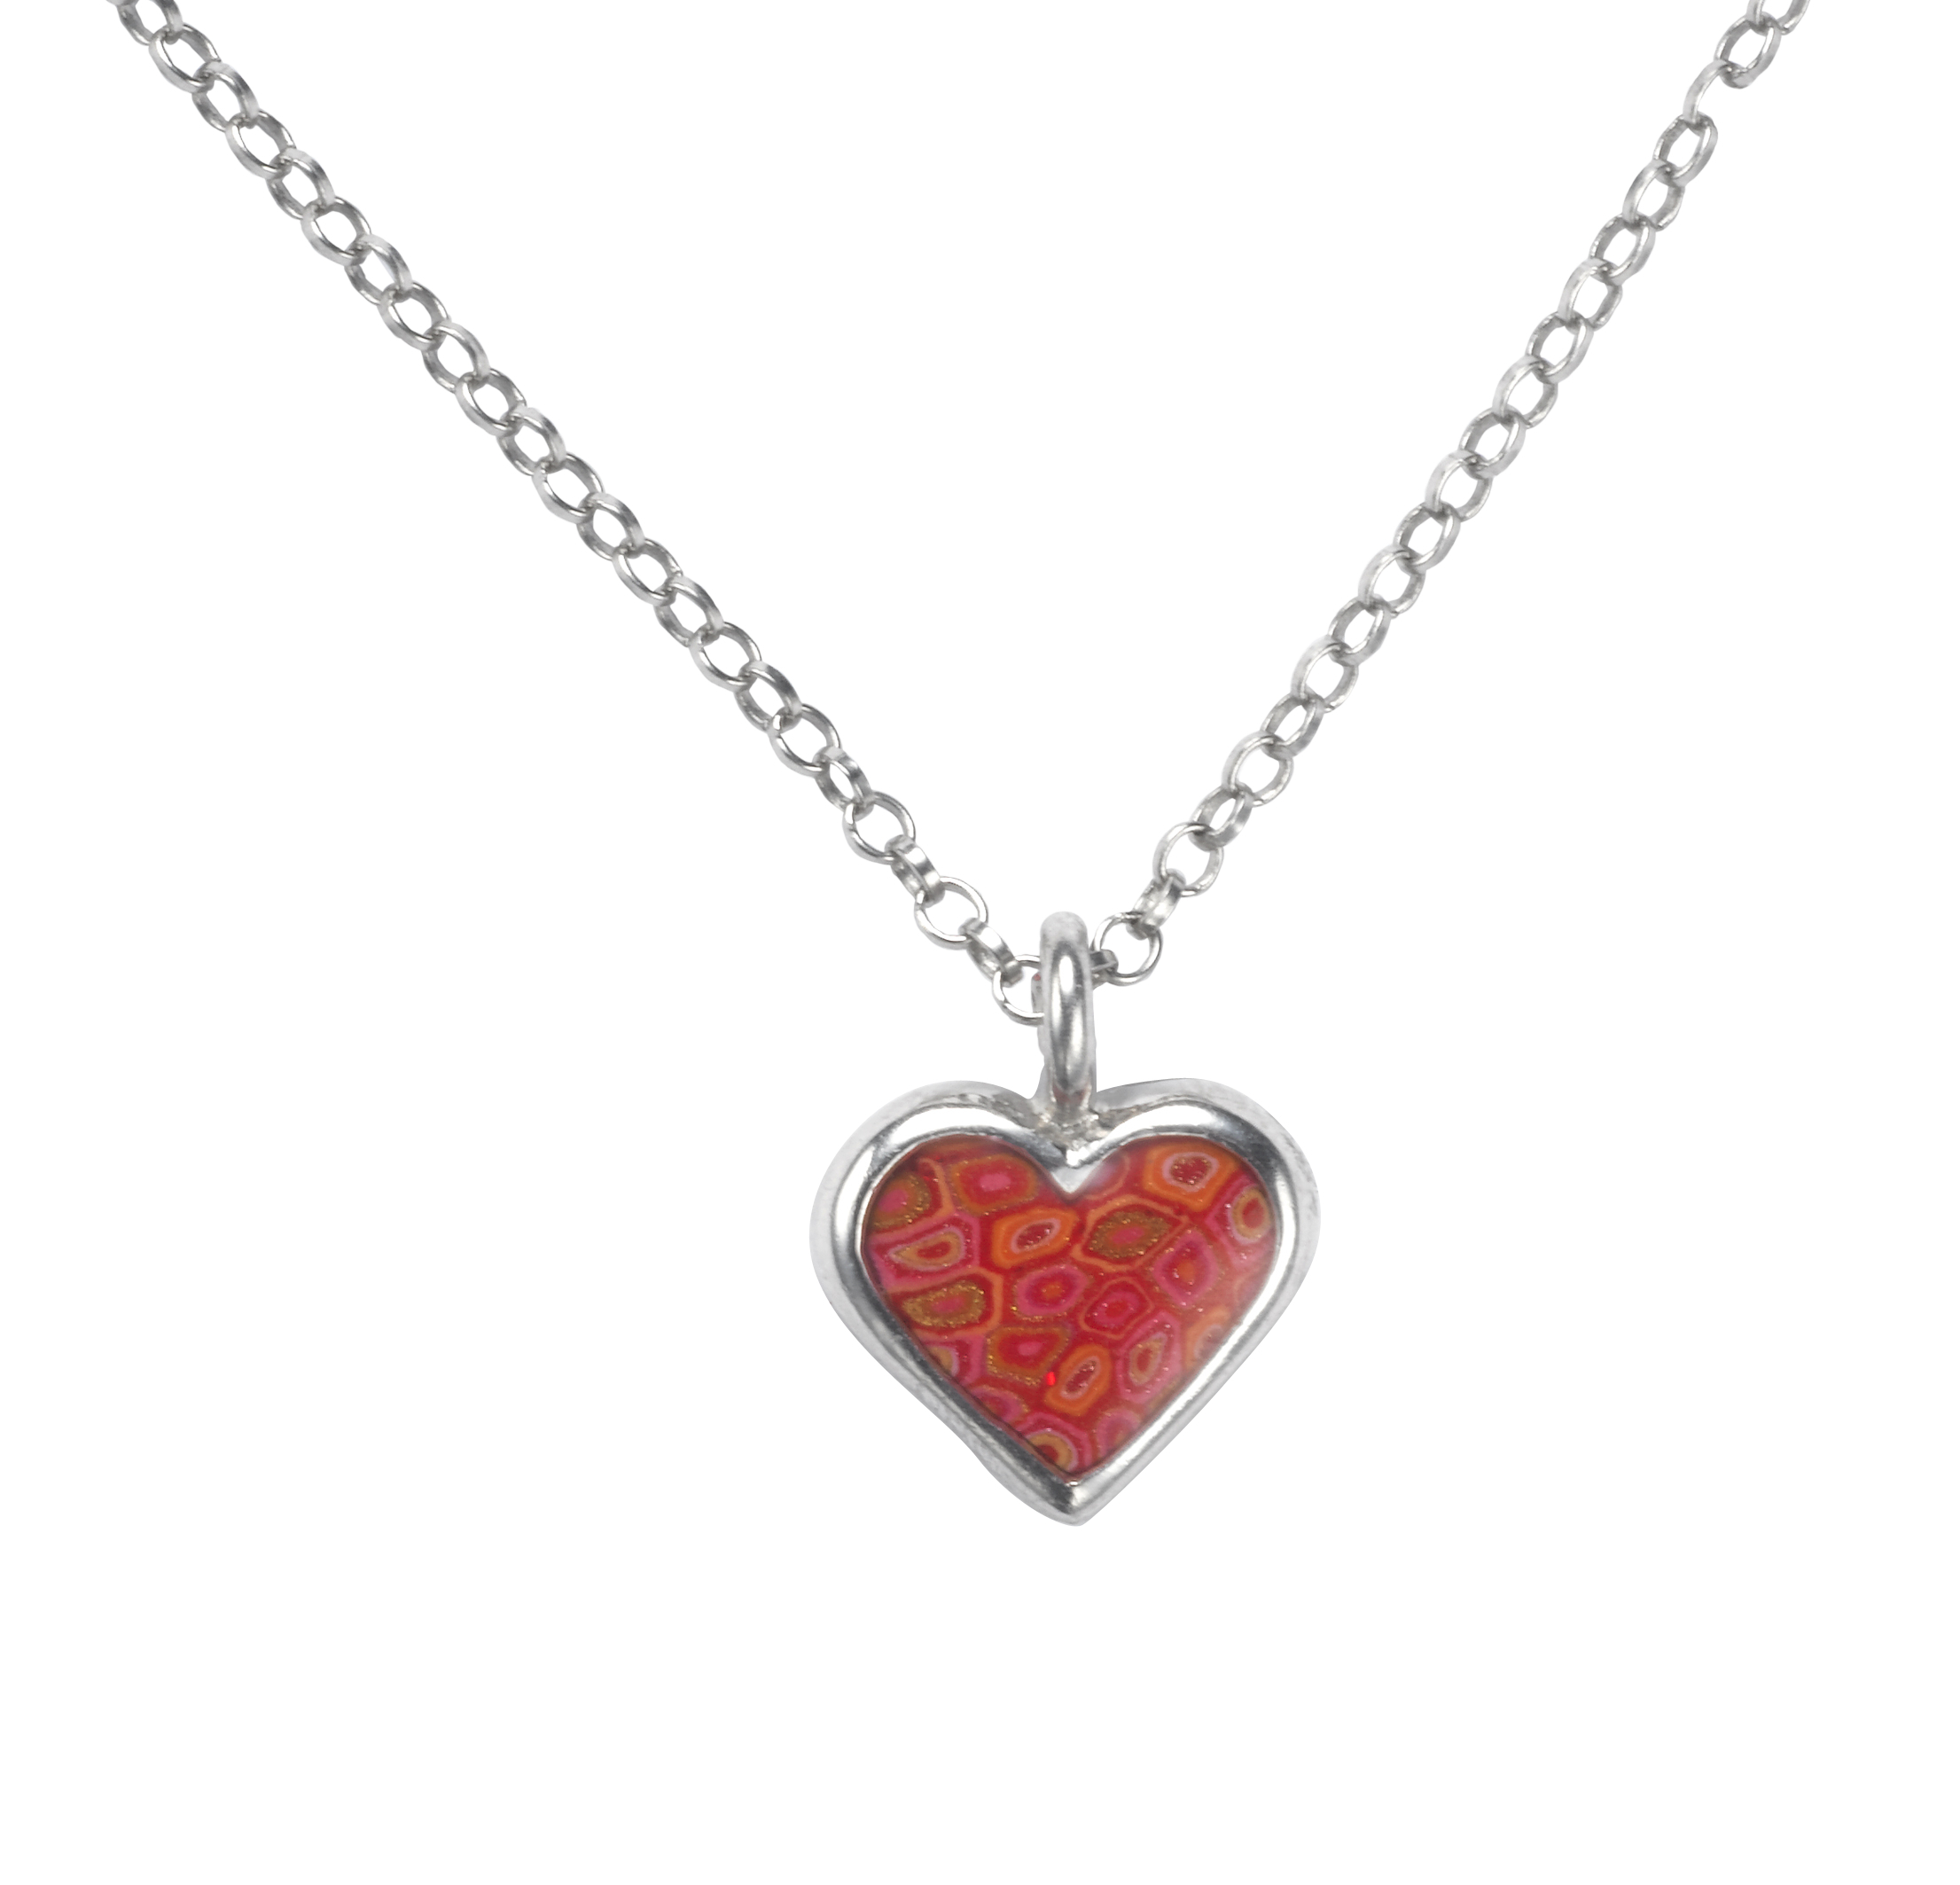 Red Heart Pendant With Circle Chain Necklace With Regard To Best And Newest Joined Hearts Chain Necklaces (View 21 of 25)